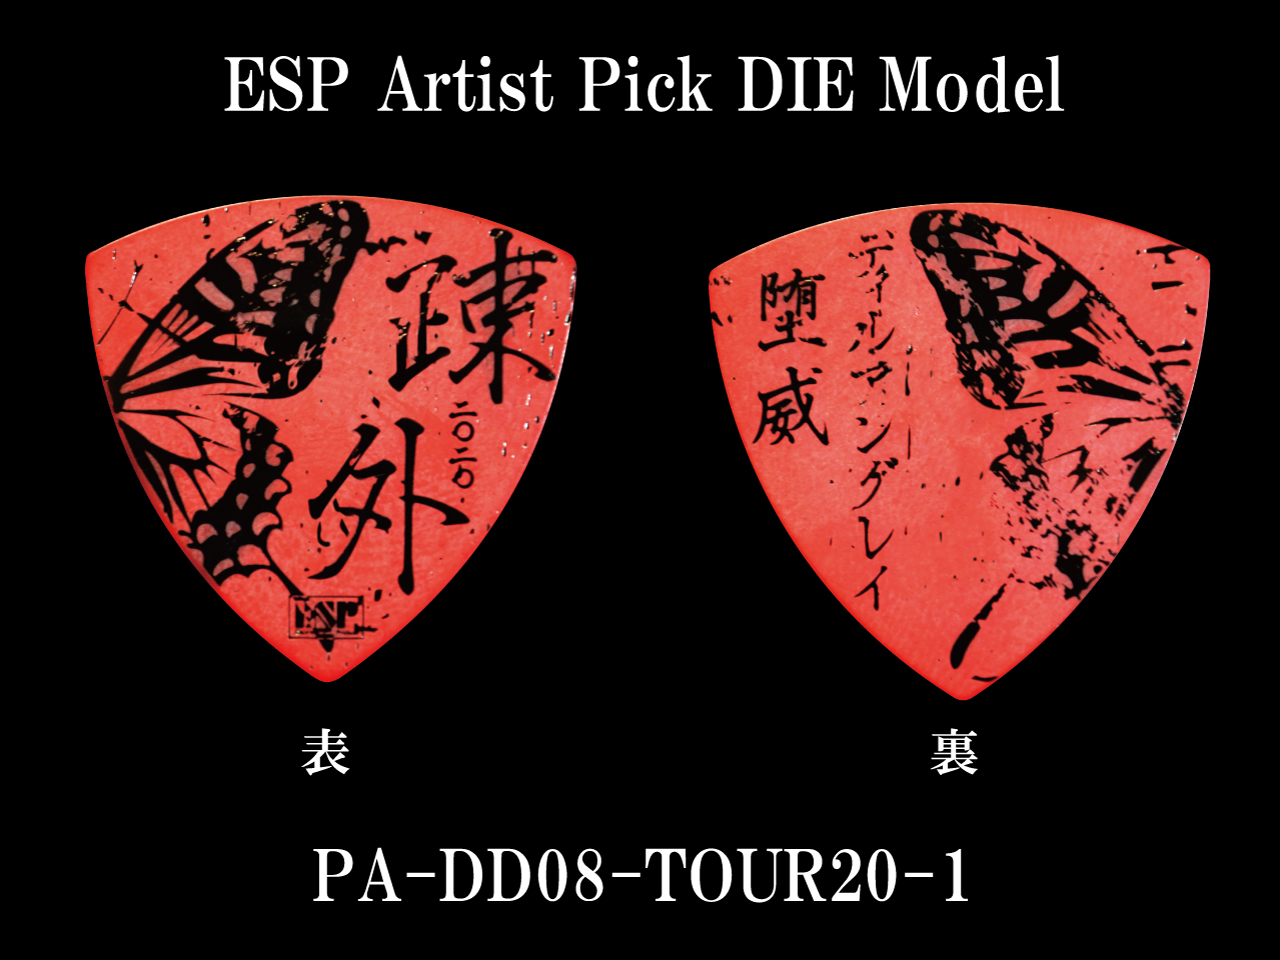 ESP(イーエスピー) Artist Pick Series PA-DD08-TOUR20-1 (DIR EN GREY/Die Model)